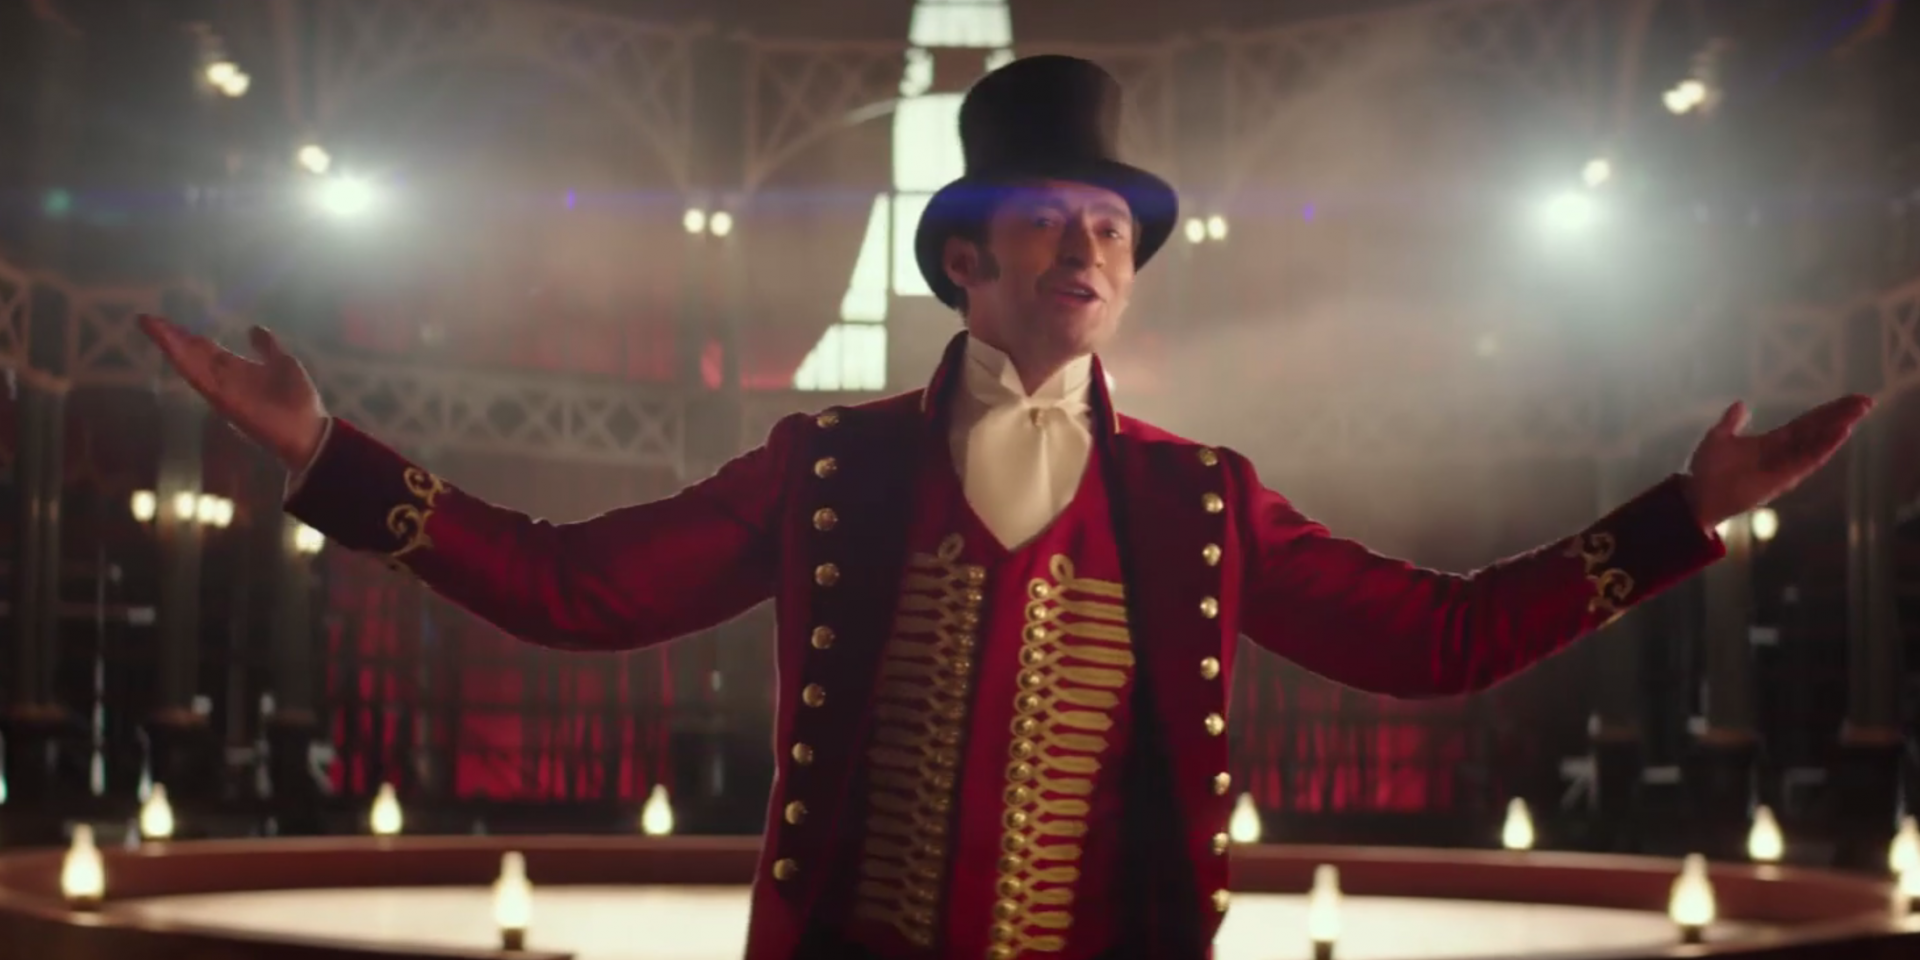 Montblanc – The Greatest Showman